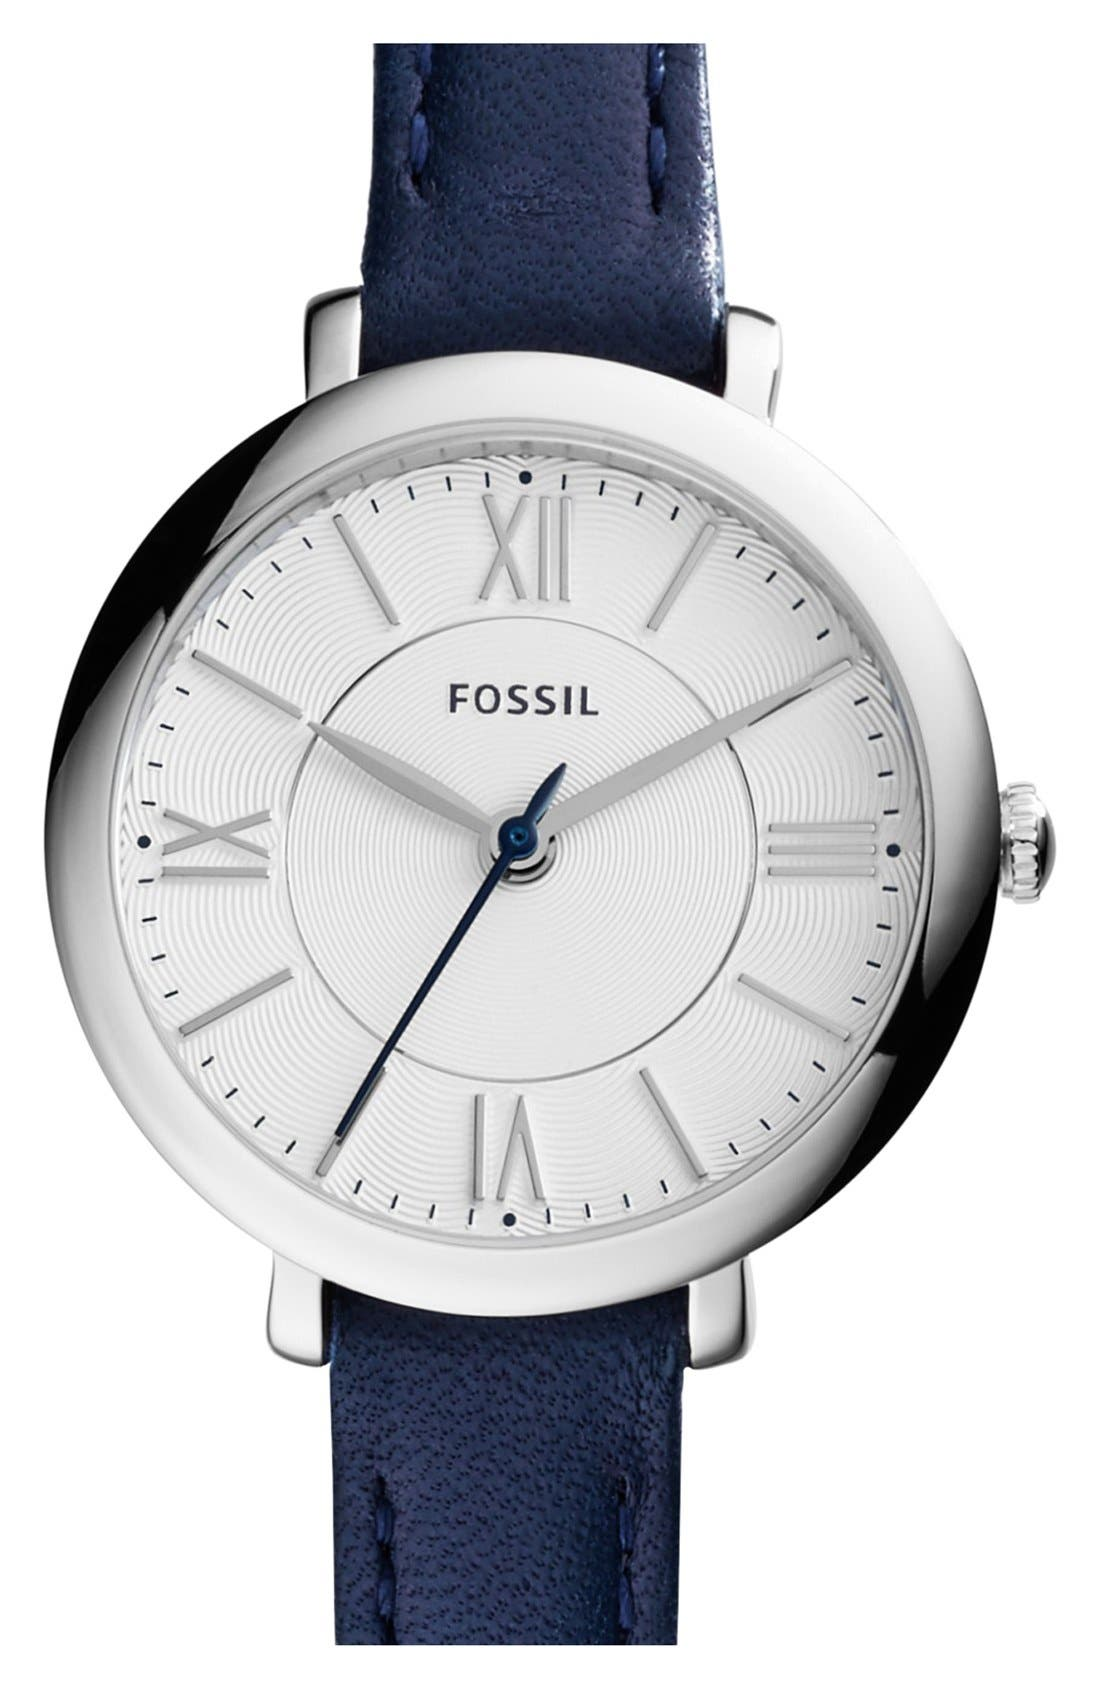 Main Image - Fossil 'Jacqueline' Leather Strap Watch, 26mm